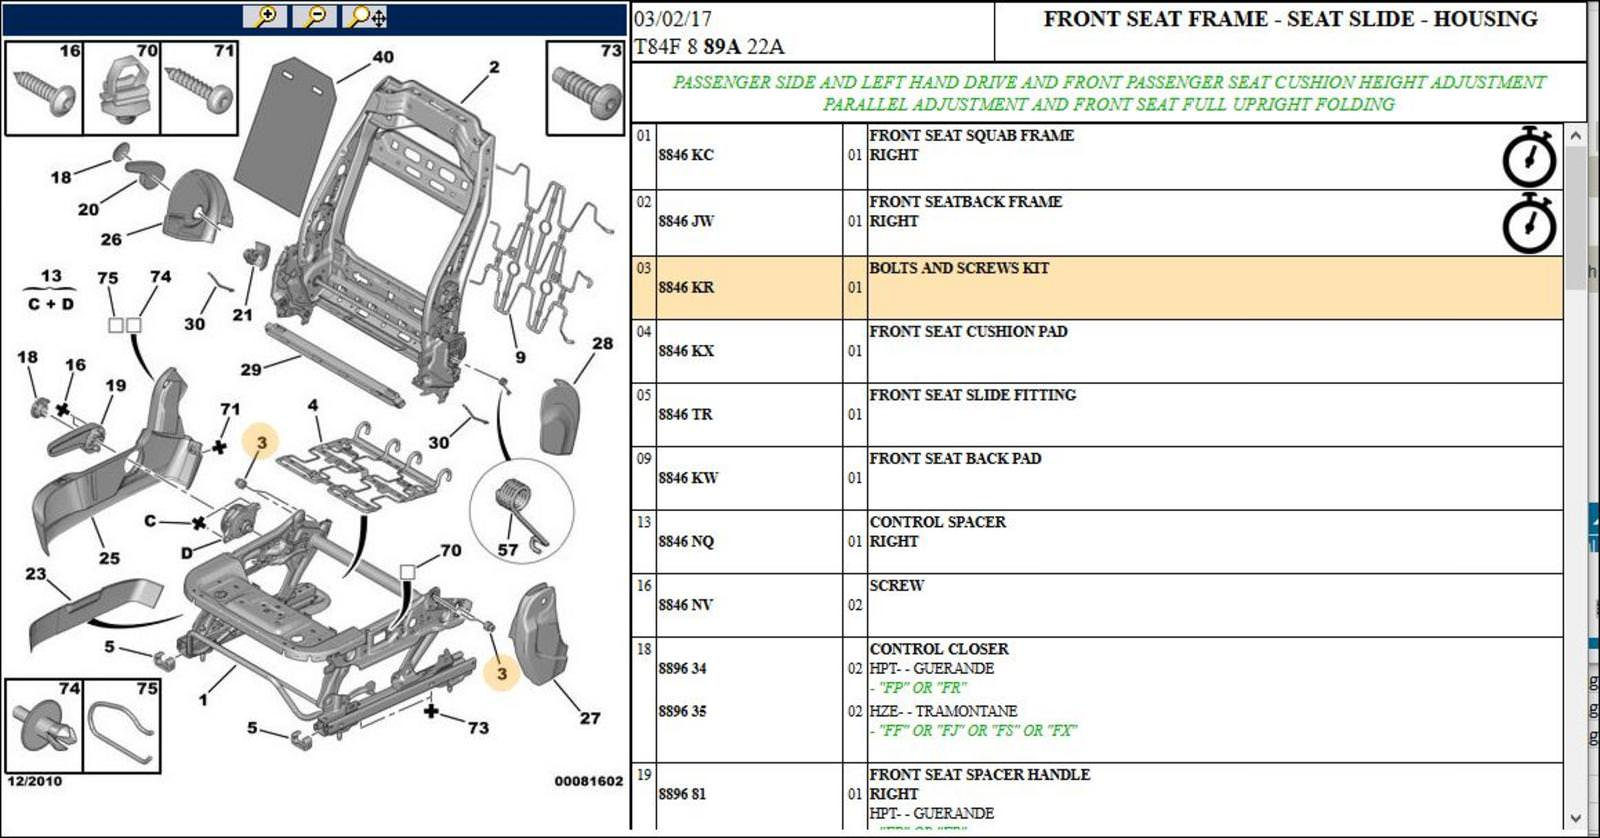 Pleasing 3 X Peugeot 3008 5008 Front Seat End 10 30 2019 2 25 Pm Wiring Digital Resources Talizslowmaporg